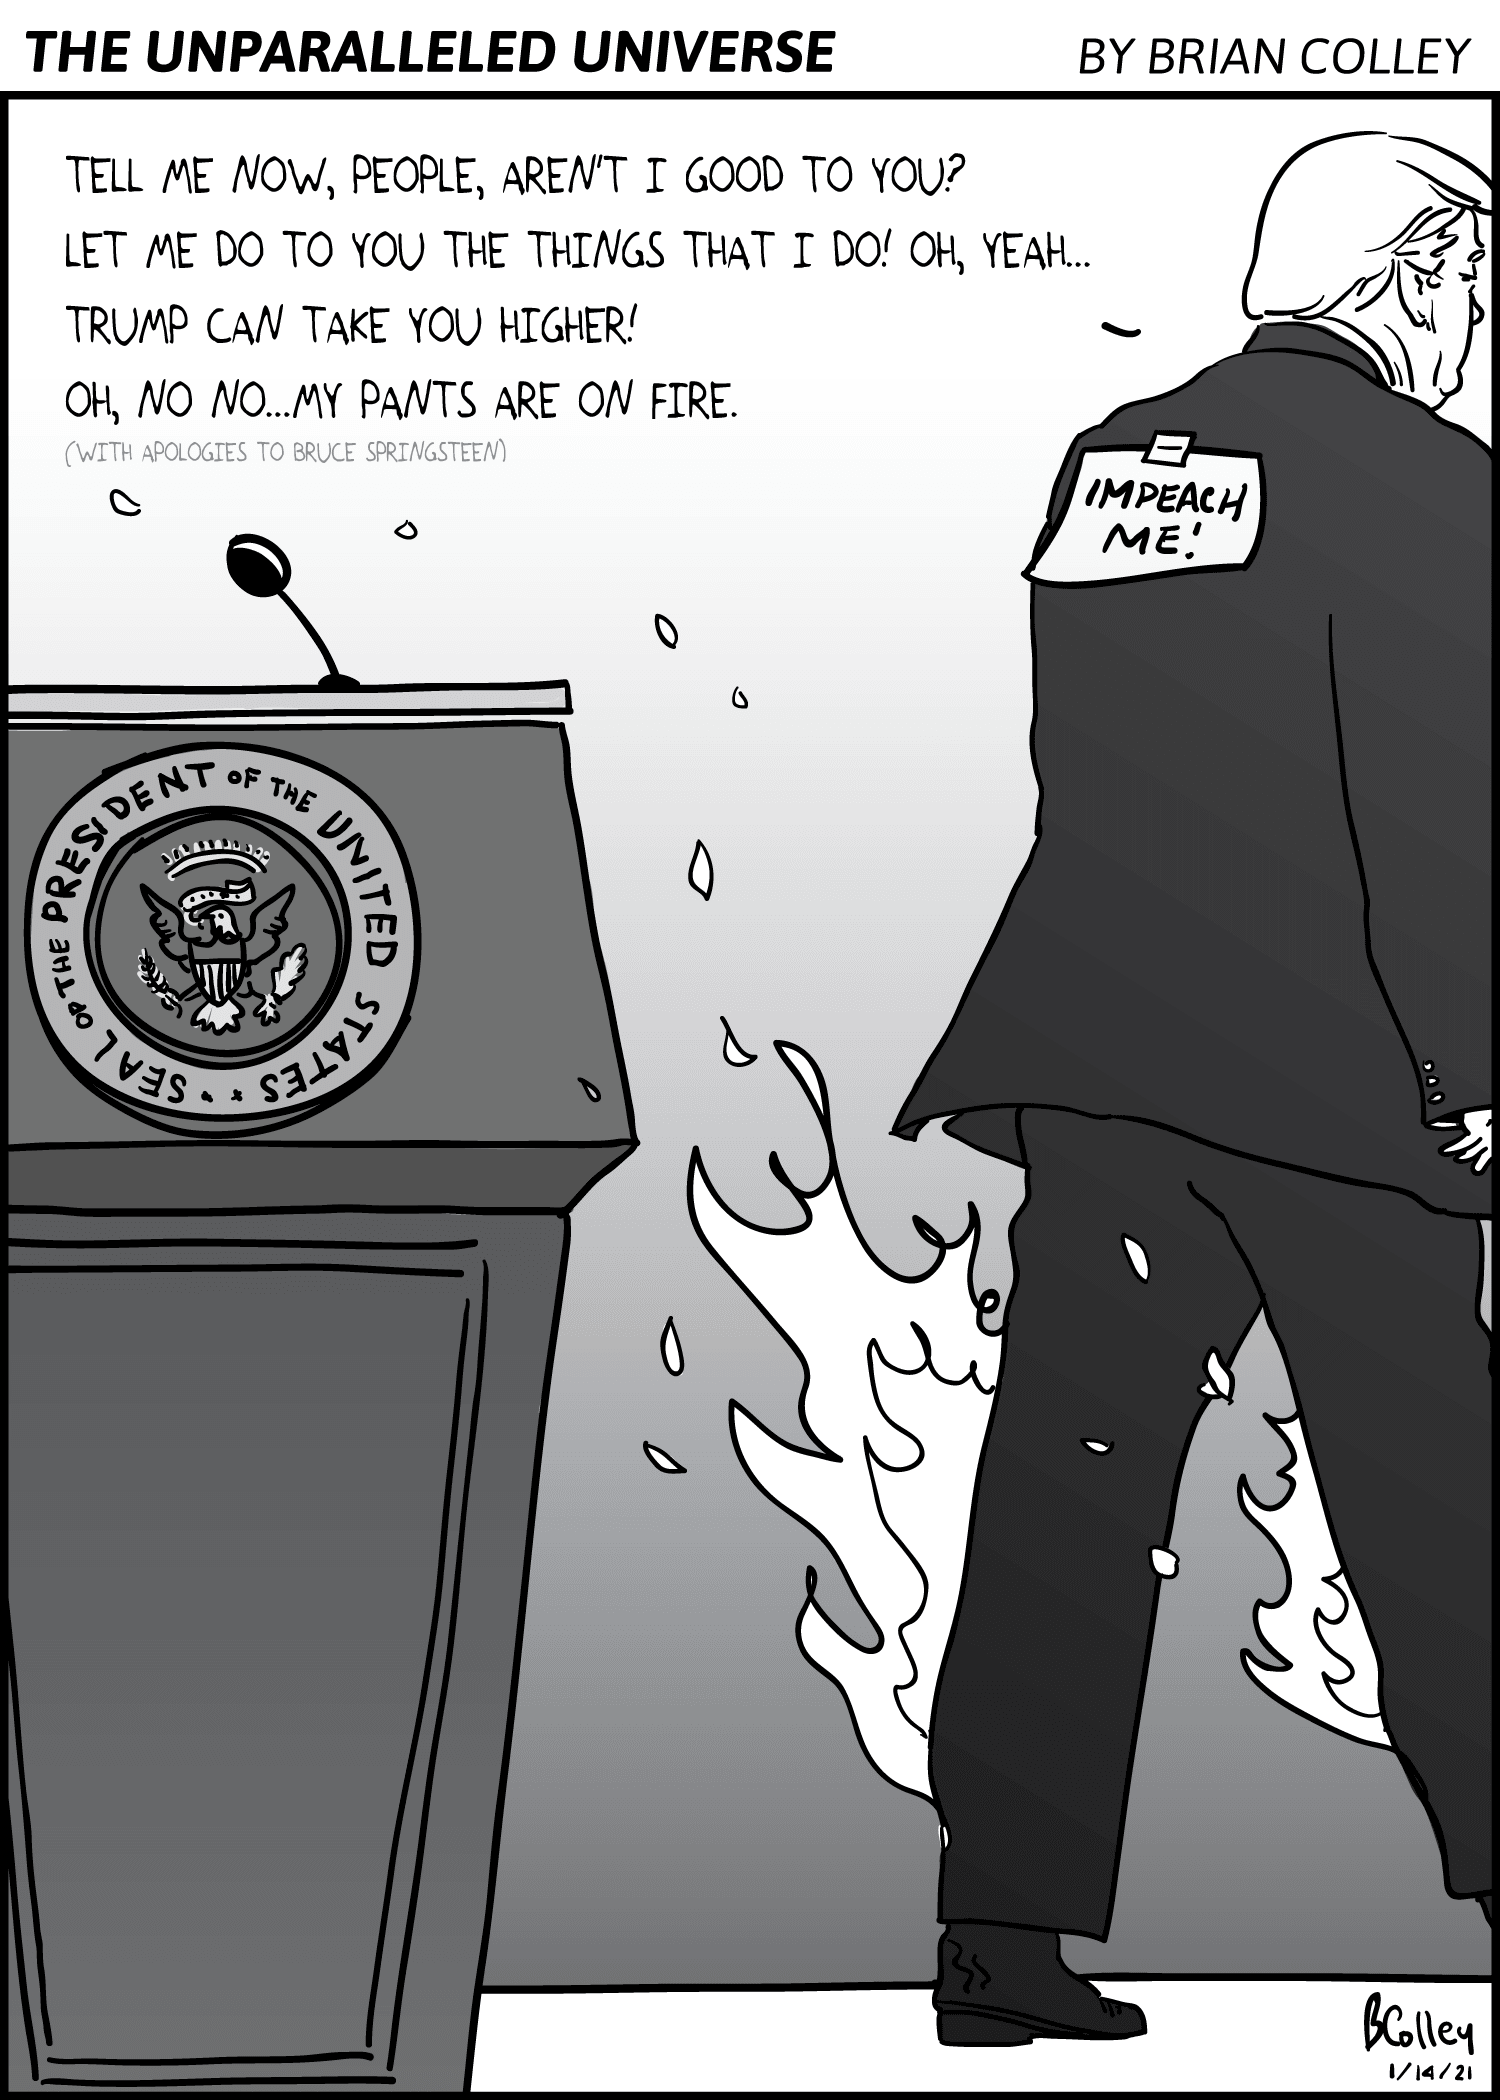 Sopris Sun Comic by Brian Colley, January 14, 2021